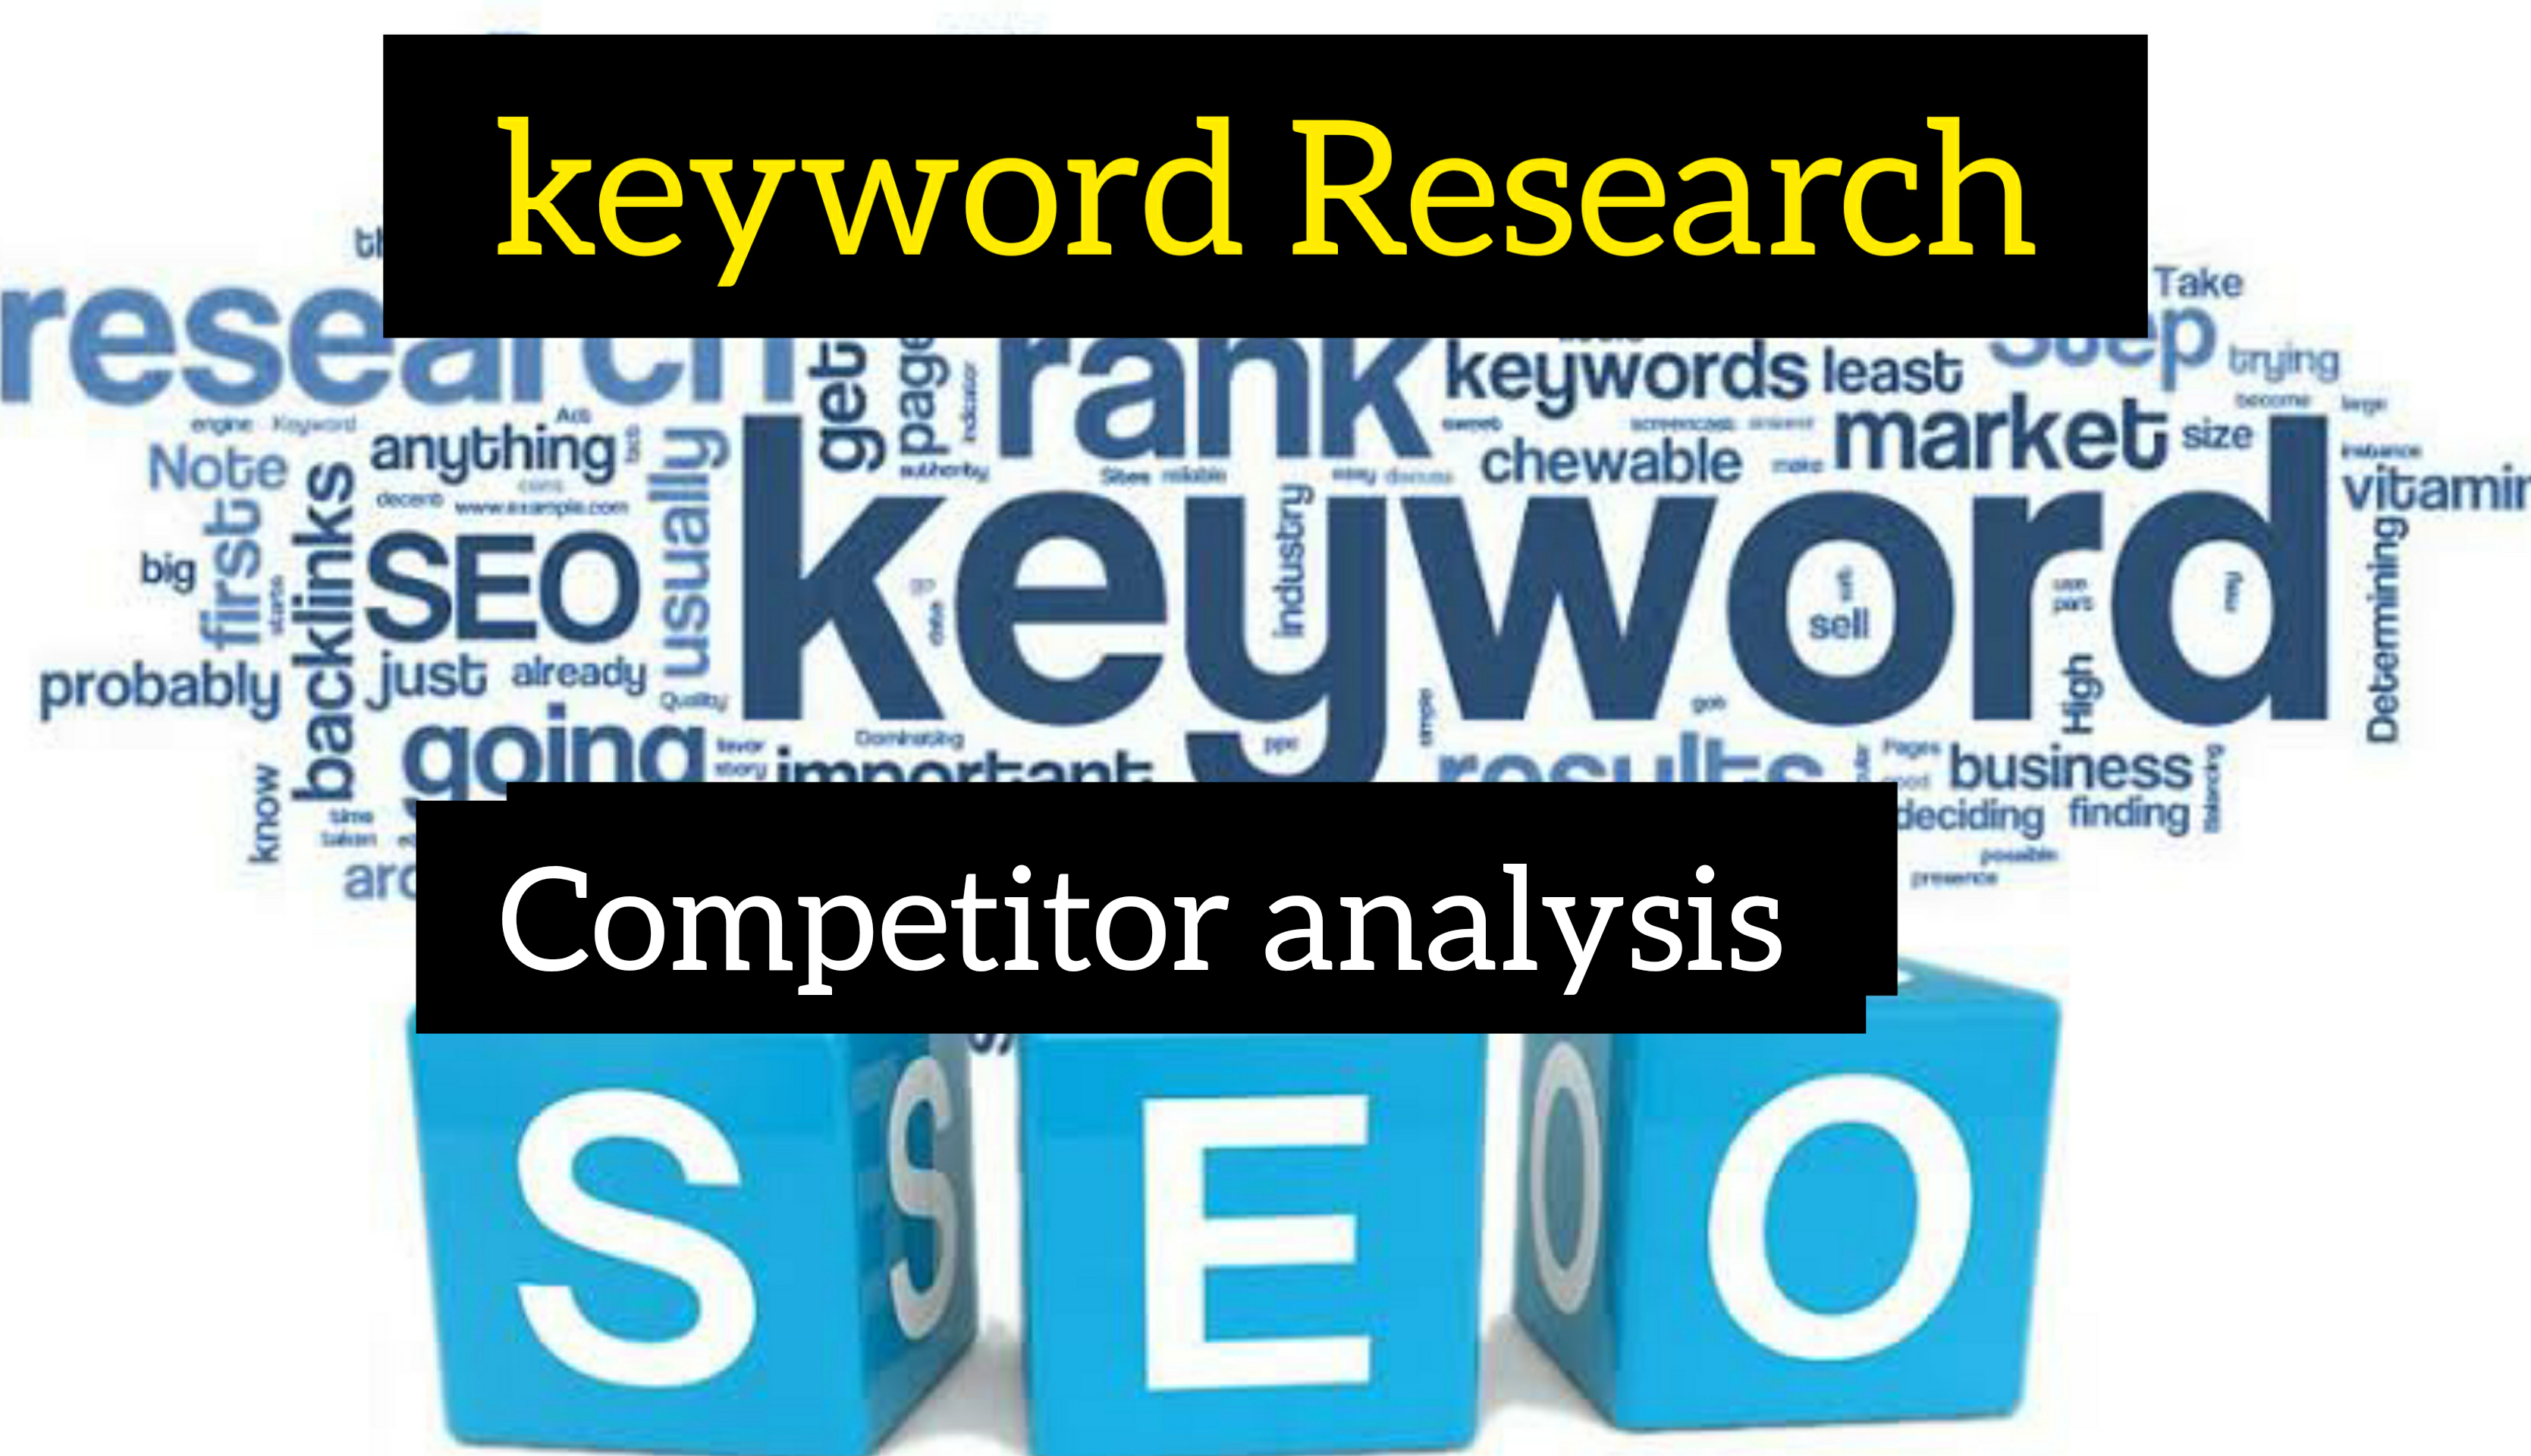 I will do the excellent 20 SEO keyword research and 1 competitor analysis